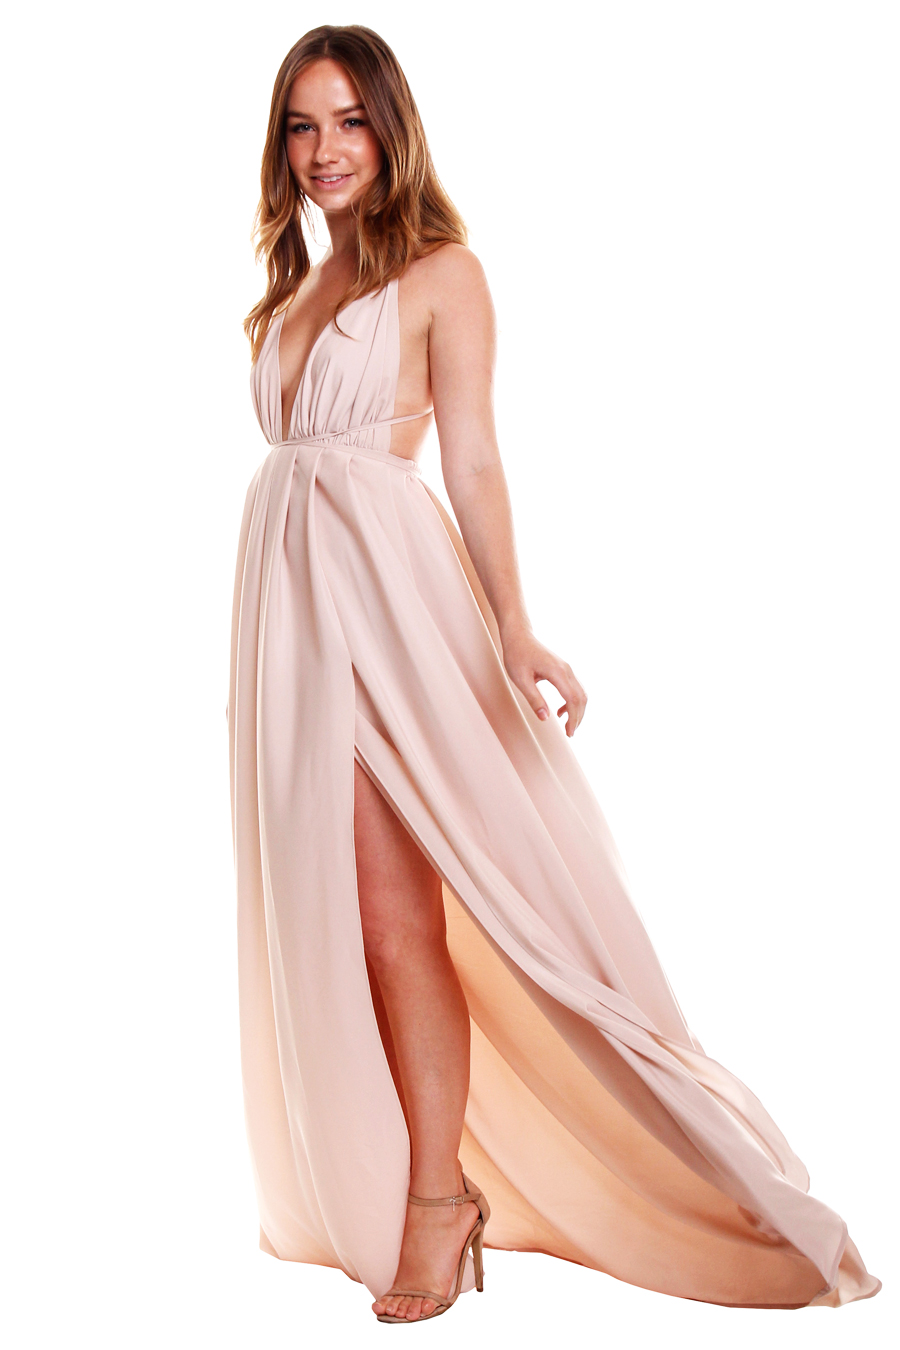 Natalie Rolt | Blossom Rust Gown